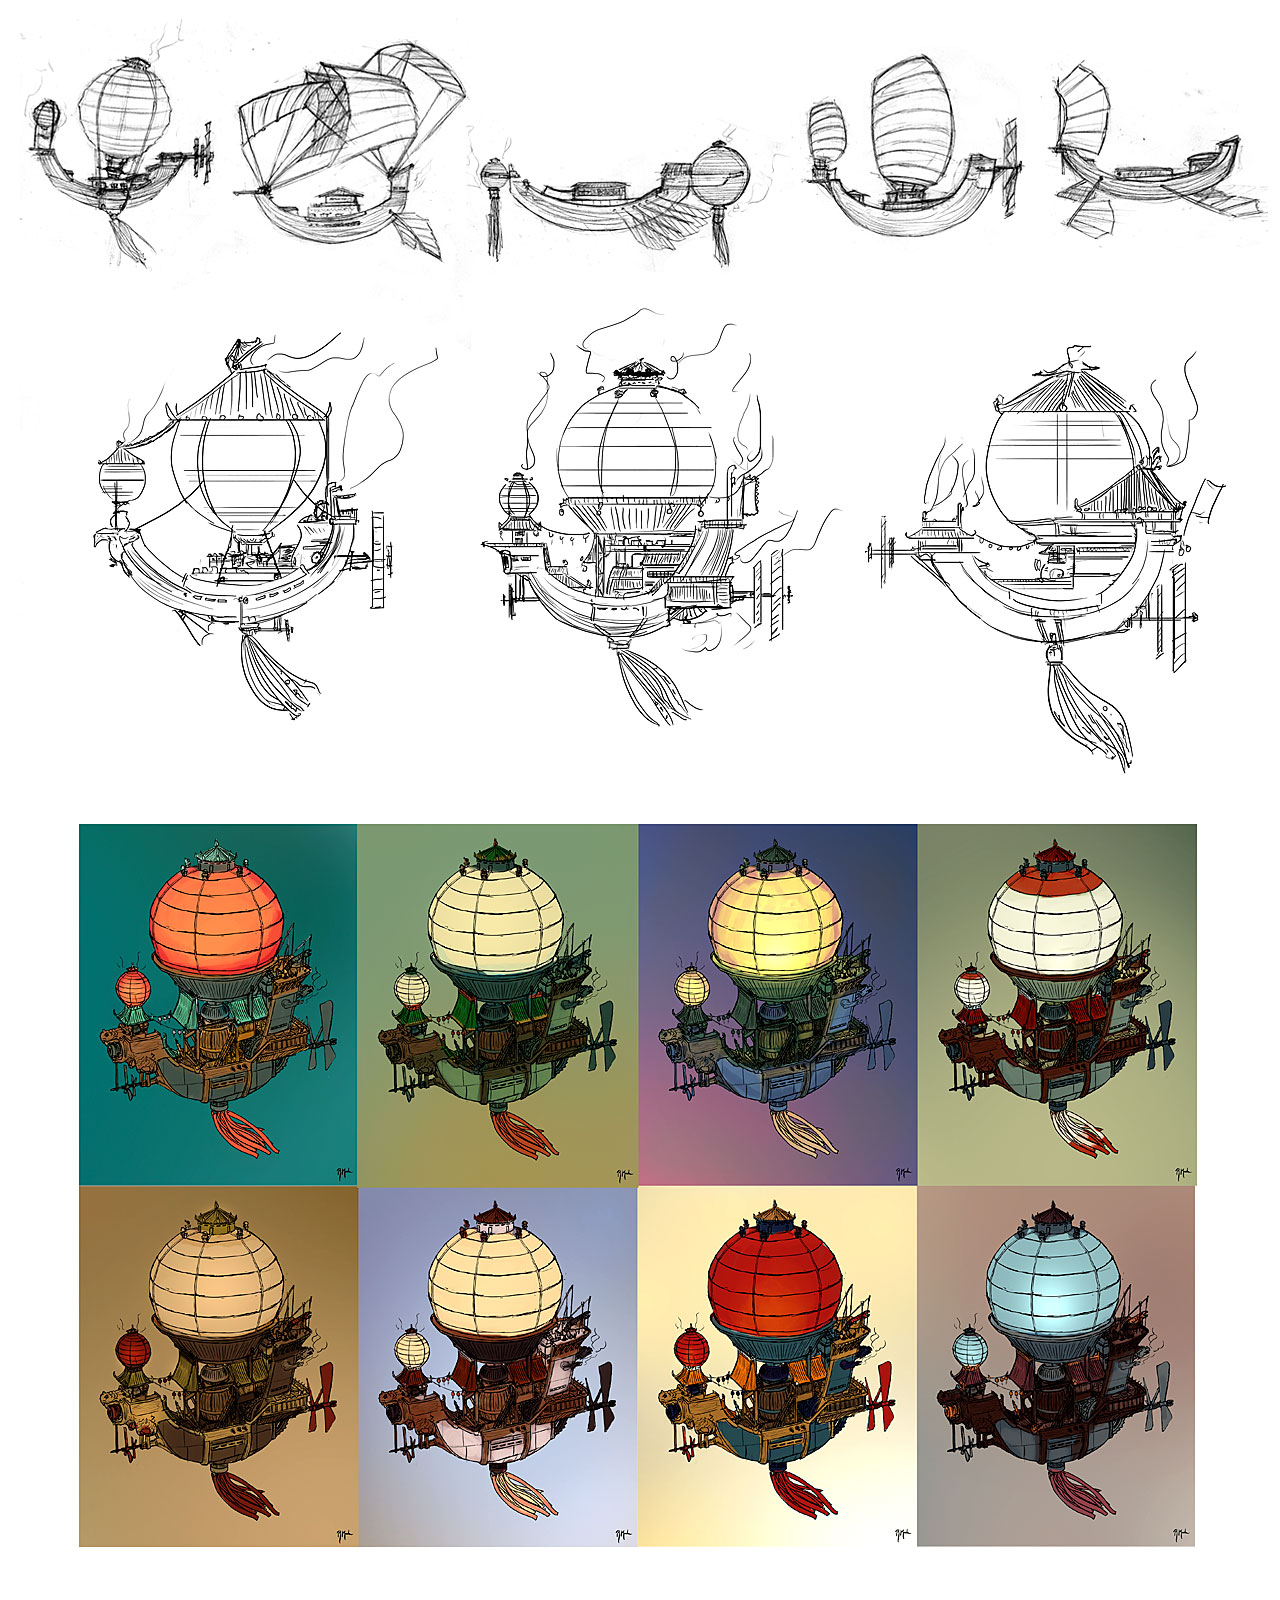 Design Process for Vehicle Design for Golden Gear Games